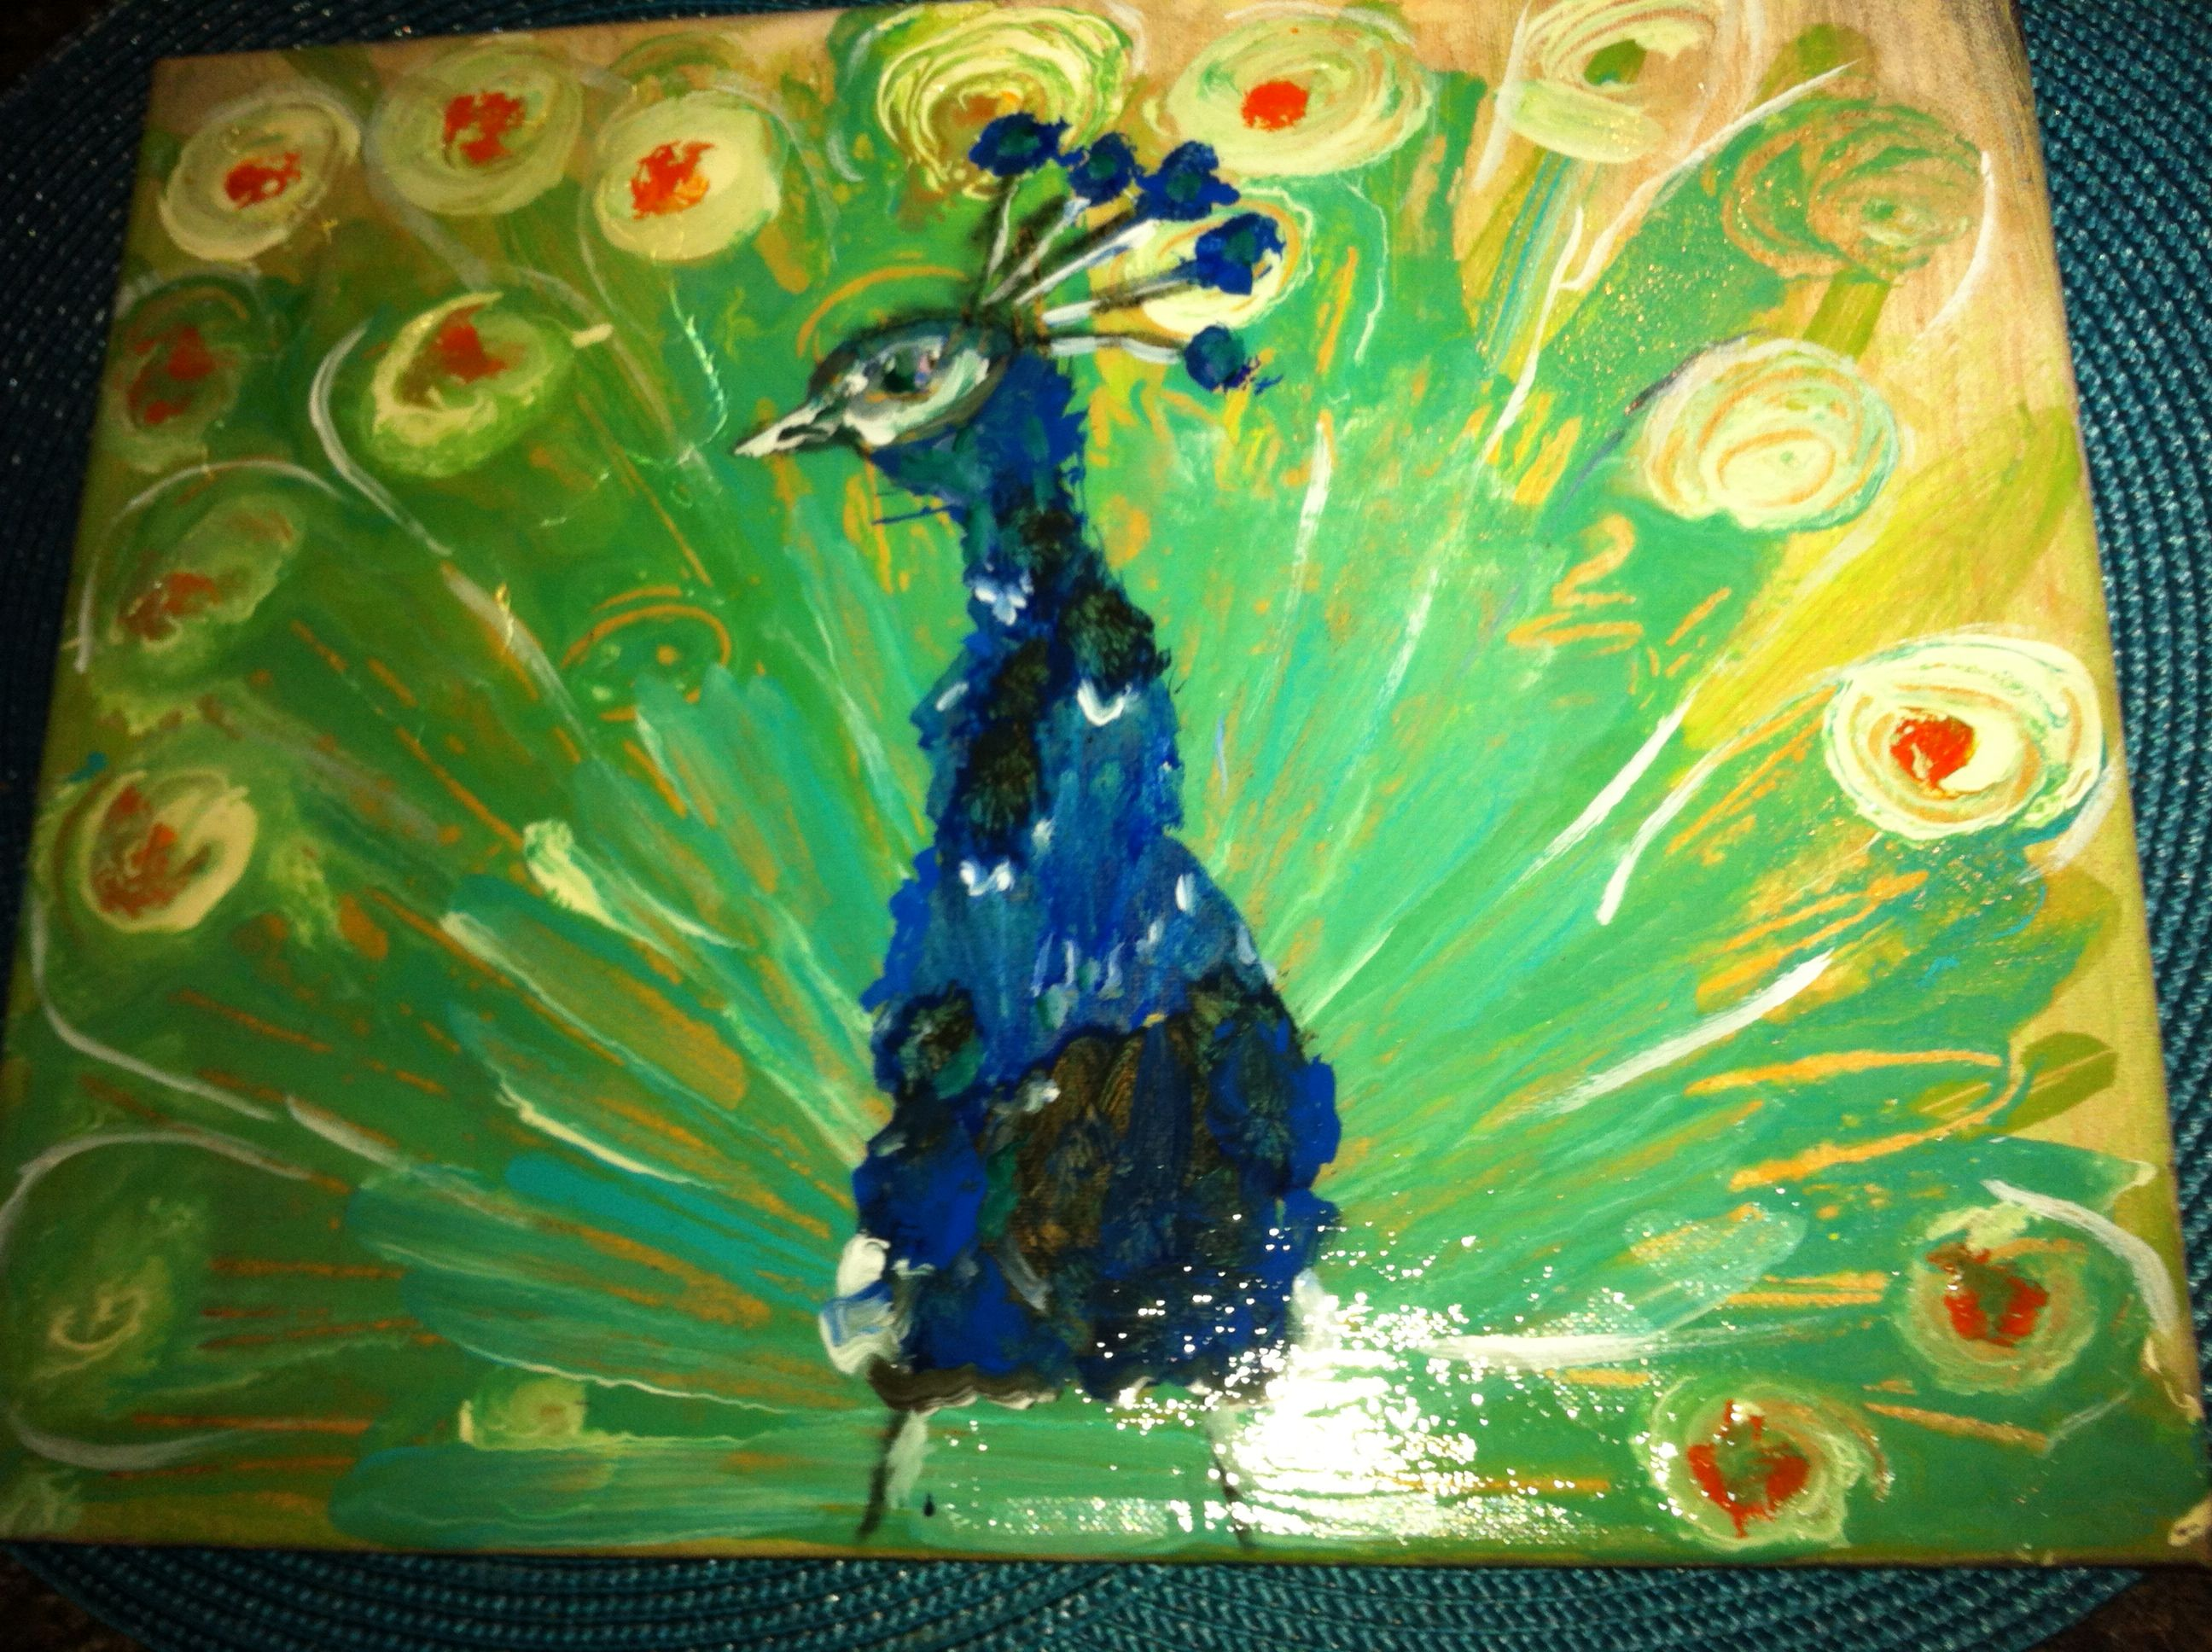 Mr. Peacock is painted in acrylics on canvas.